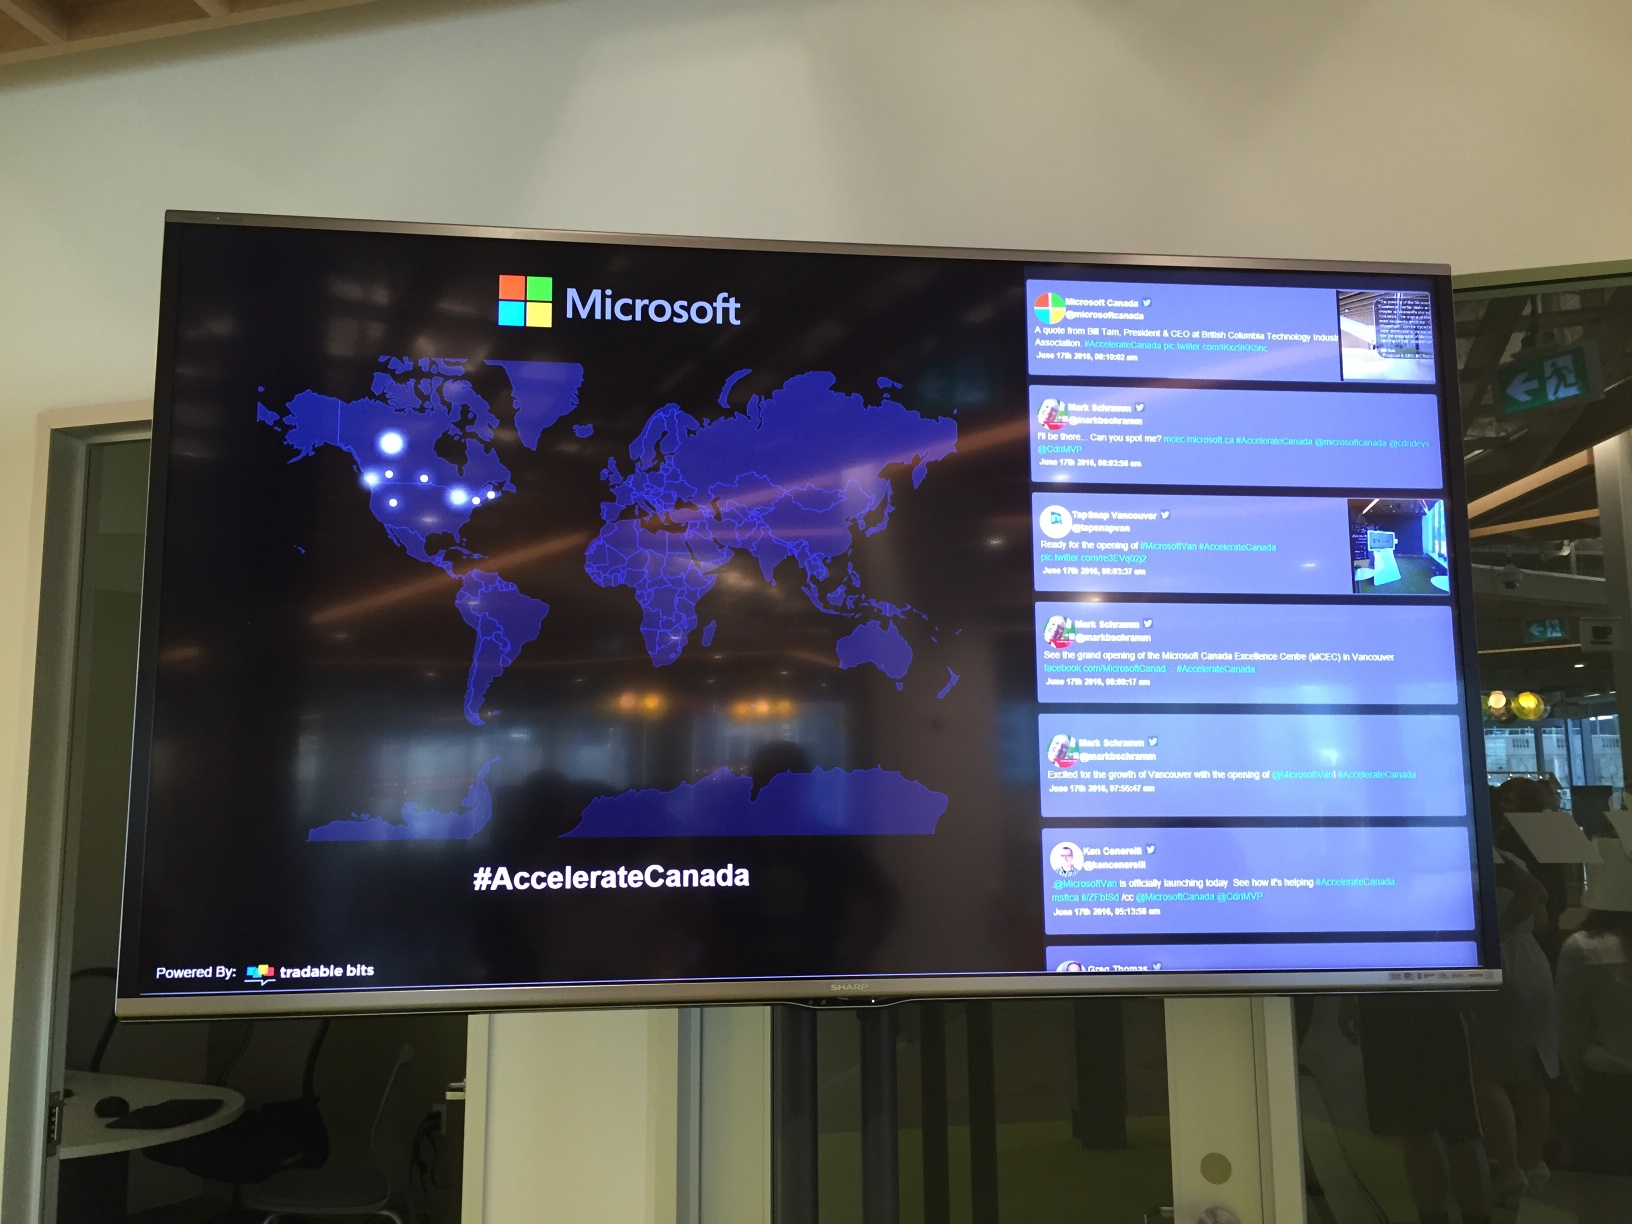 Microsoft Accelerate Canada Social Media Heatmap powered by Tradable Bits Stream